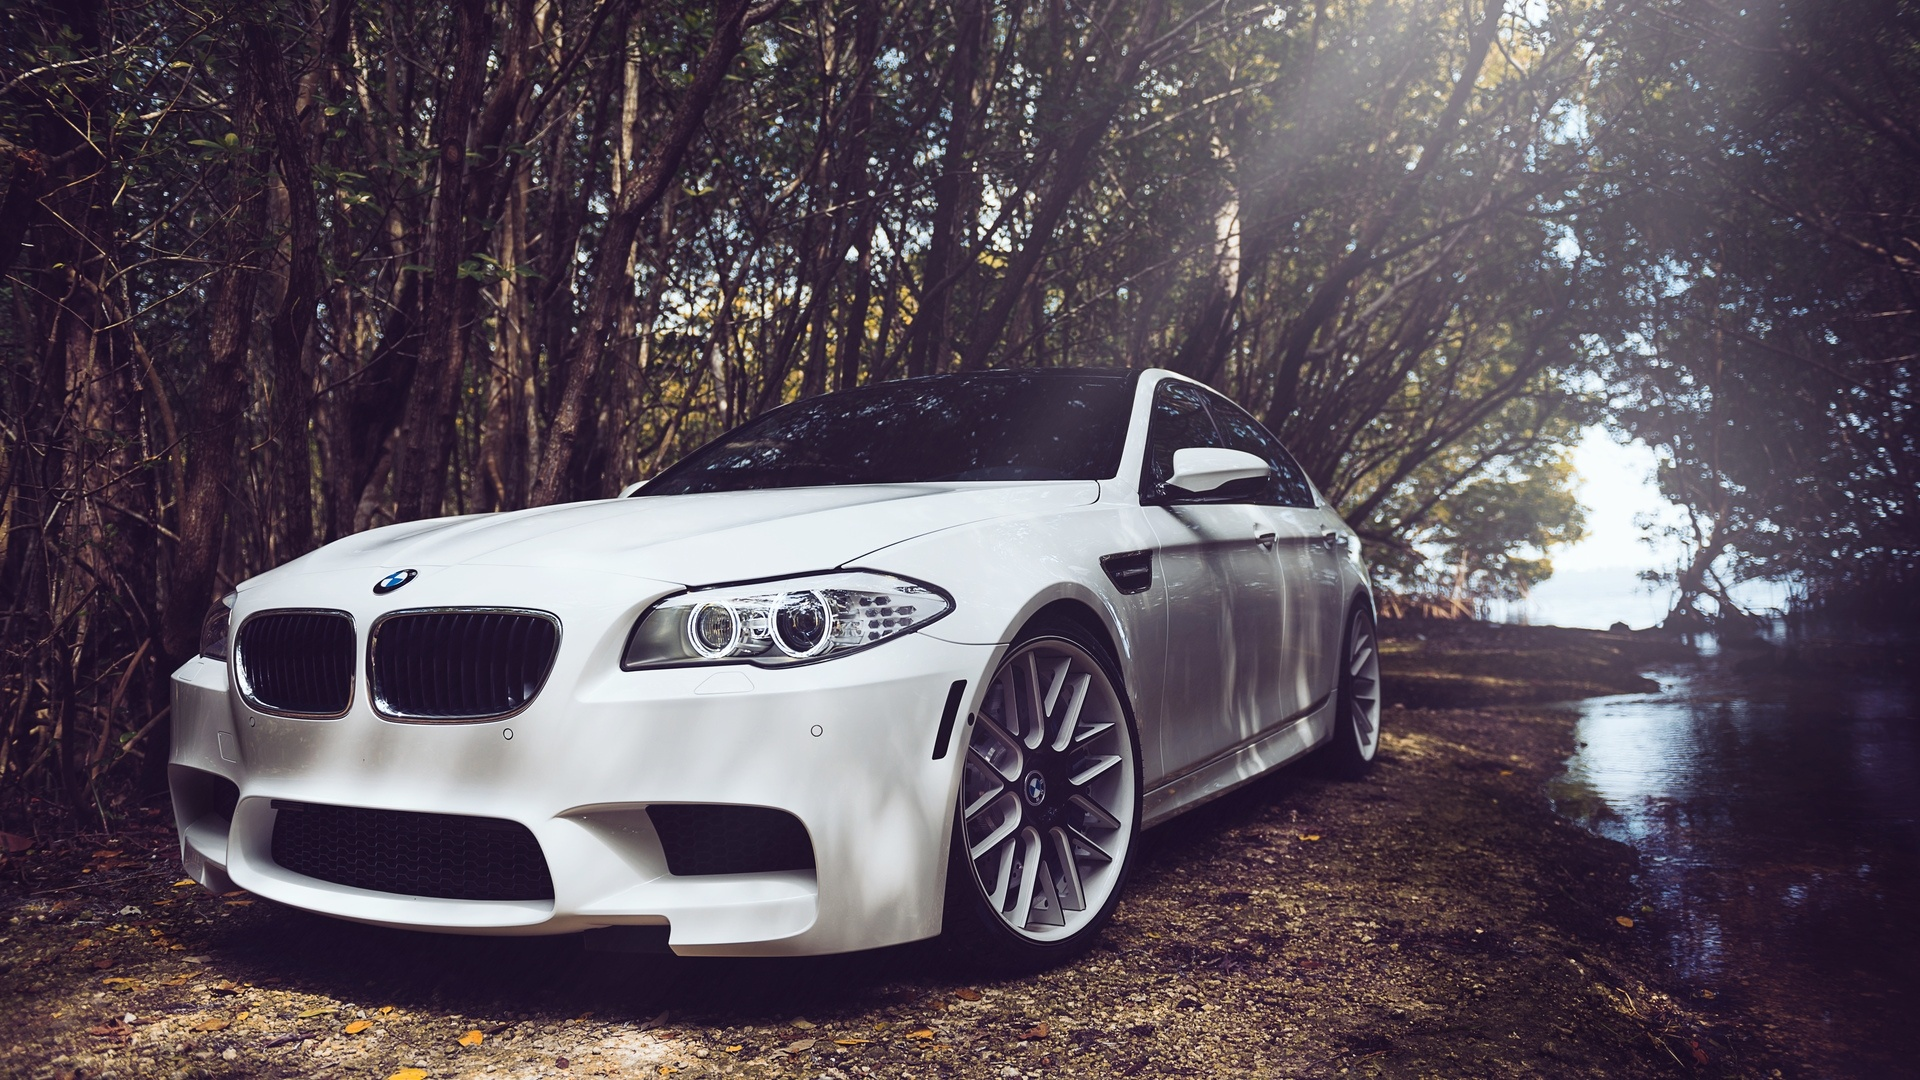 Bmw background picture